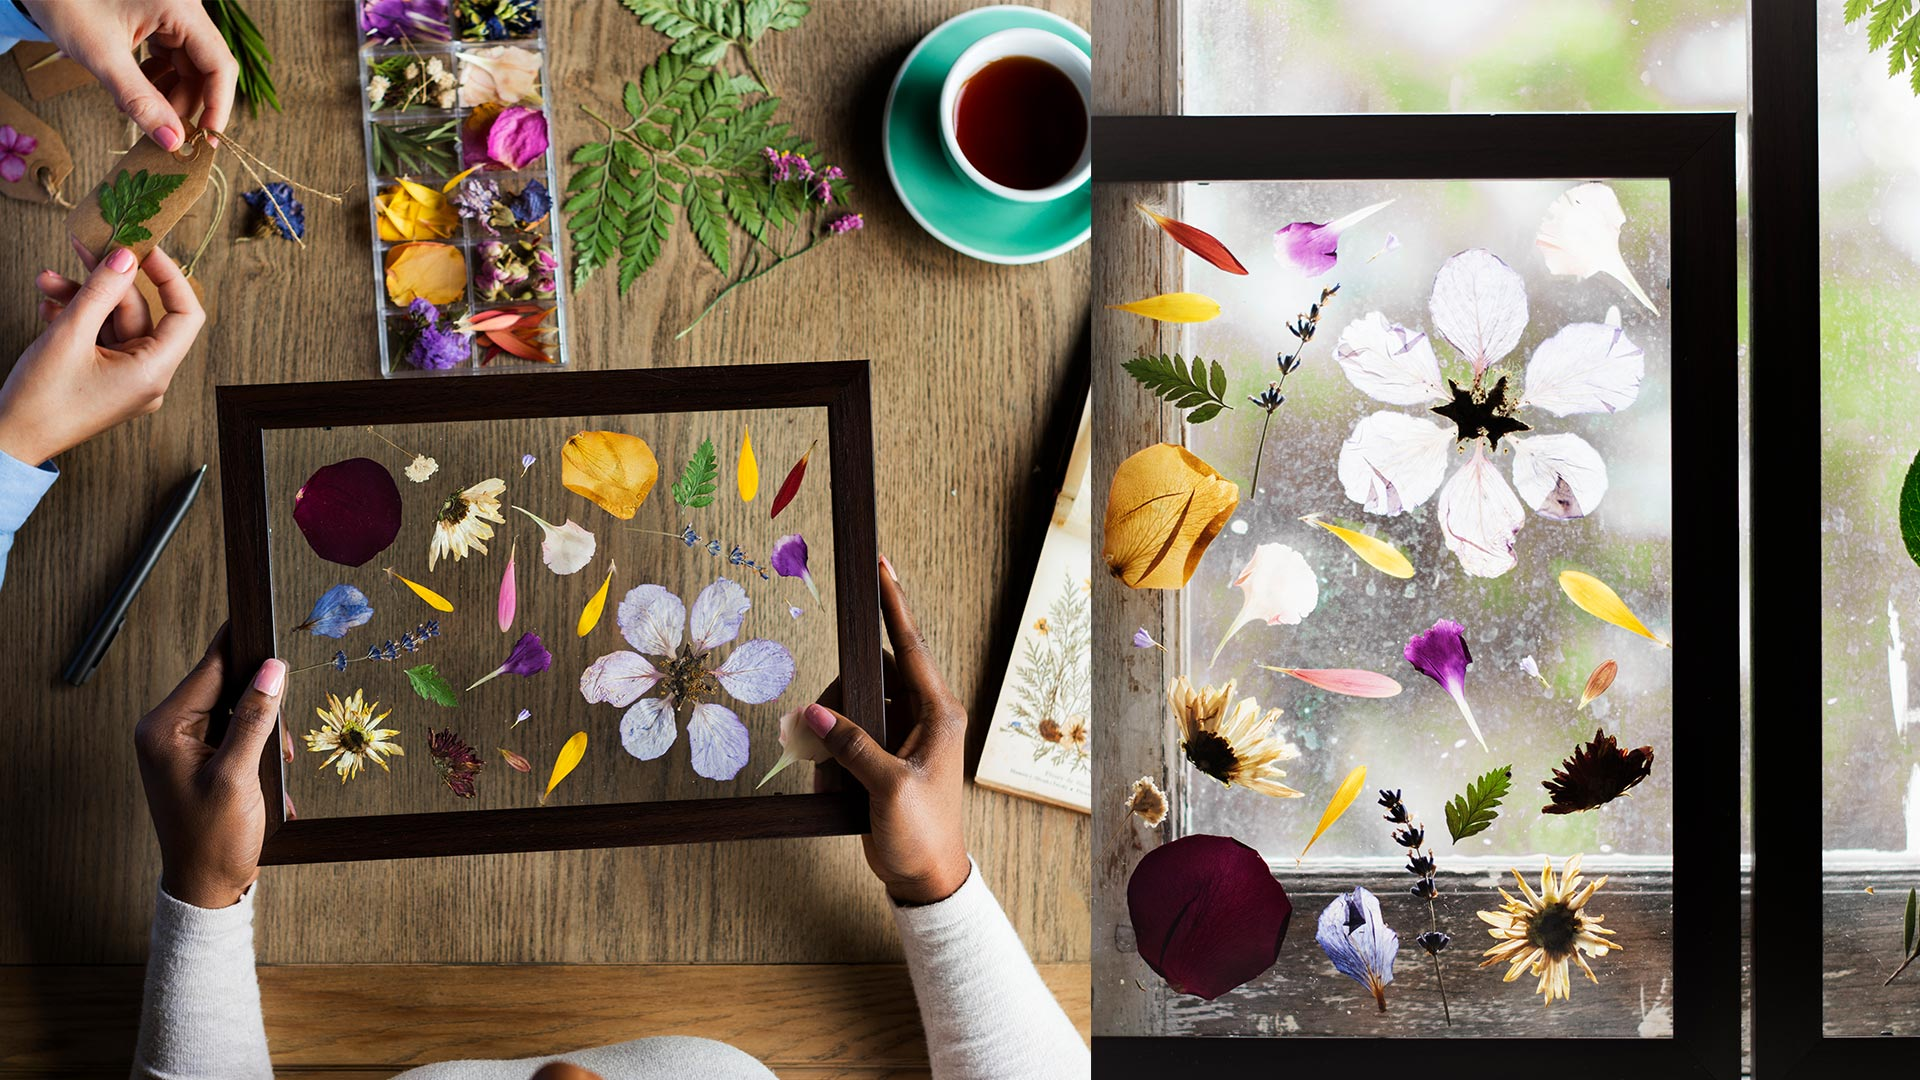 Wall Decor: Framed as pieces of artwith flowers